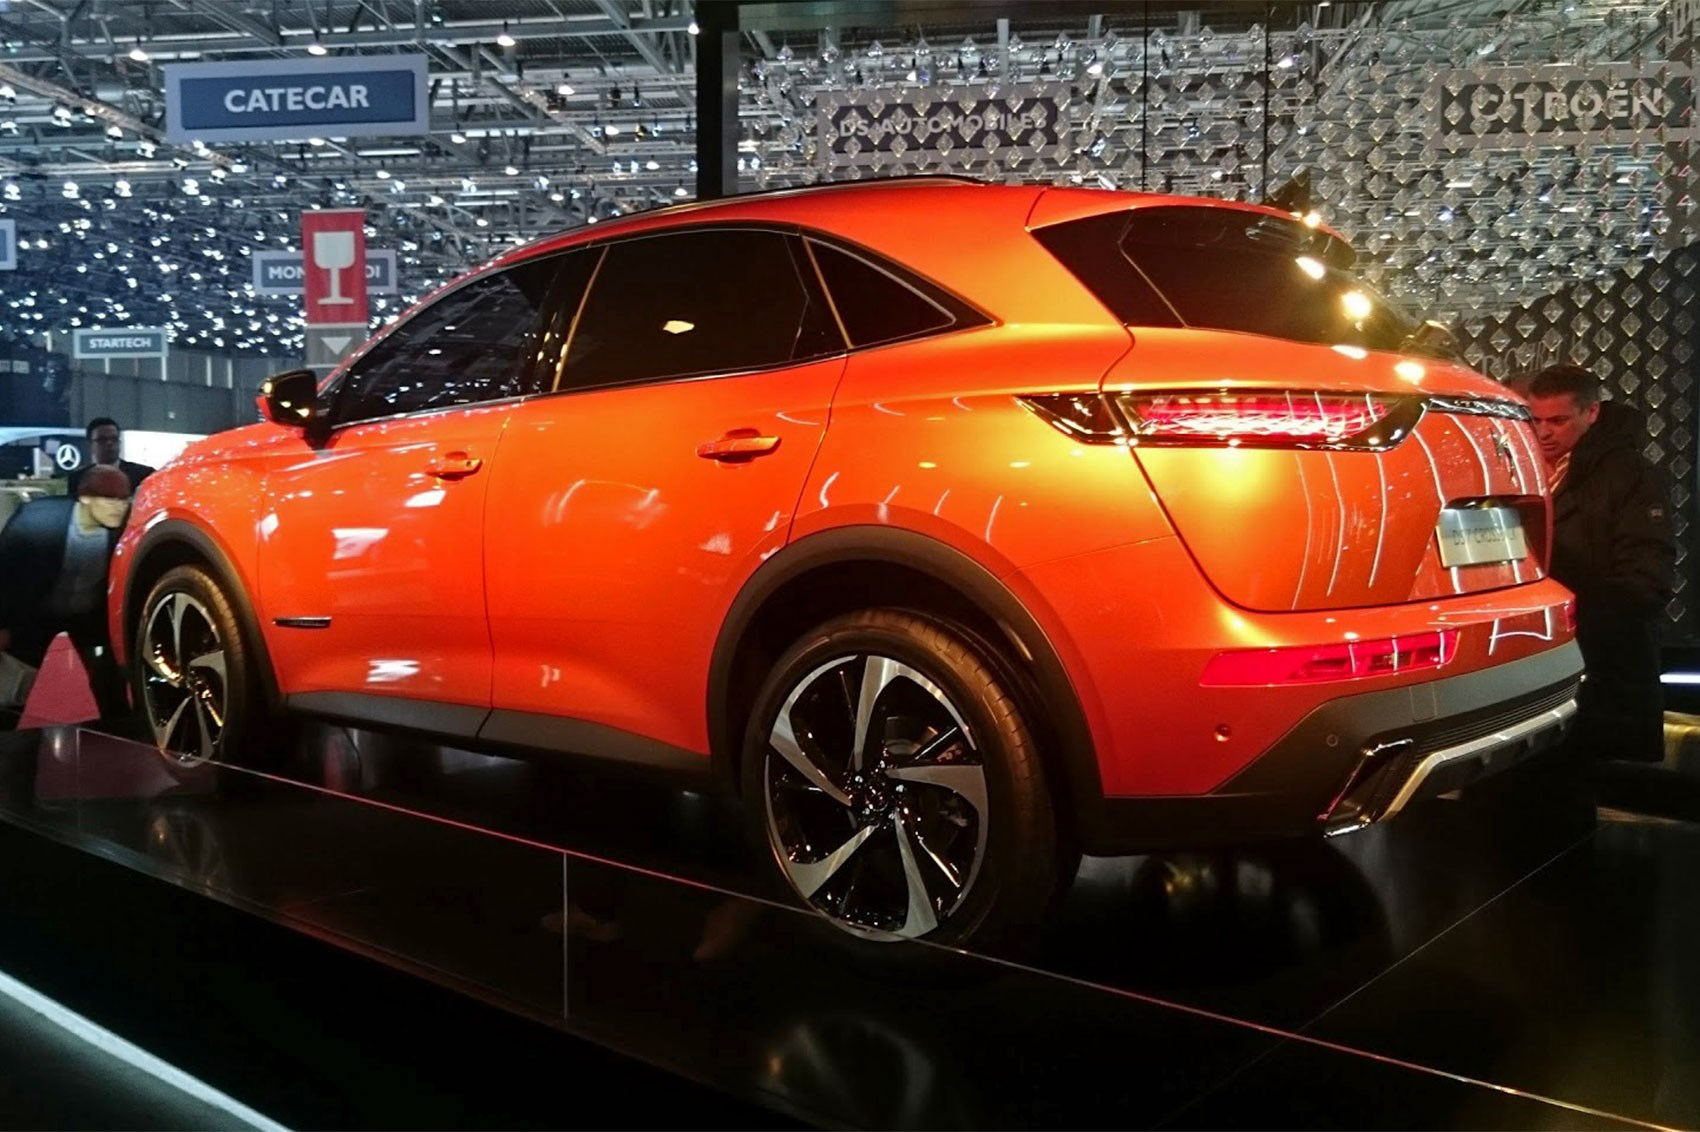 DS7 Crossback SUV: new French president Macron has first dibs by CAR Magazine